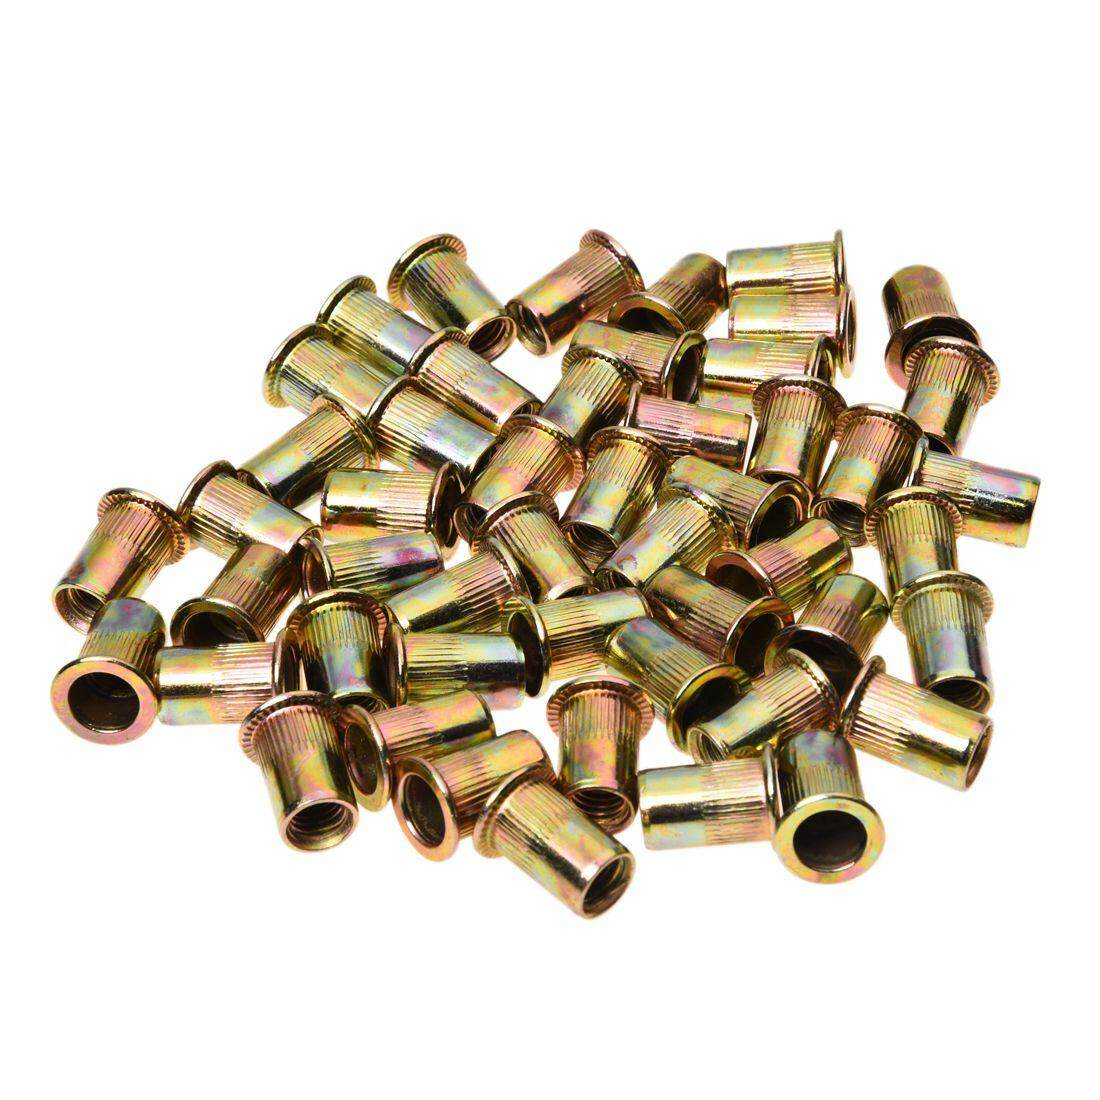 50 Pcs Flat Head Rivet Nut Furniture Decoration Instrument (m8) By Yomichew.